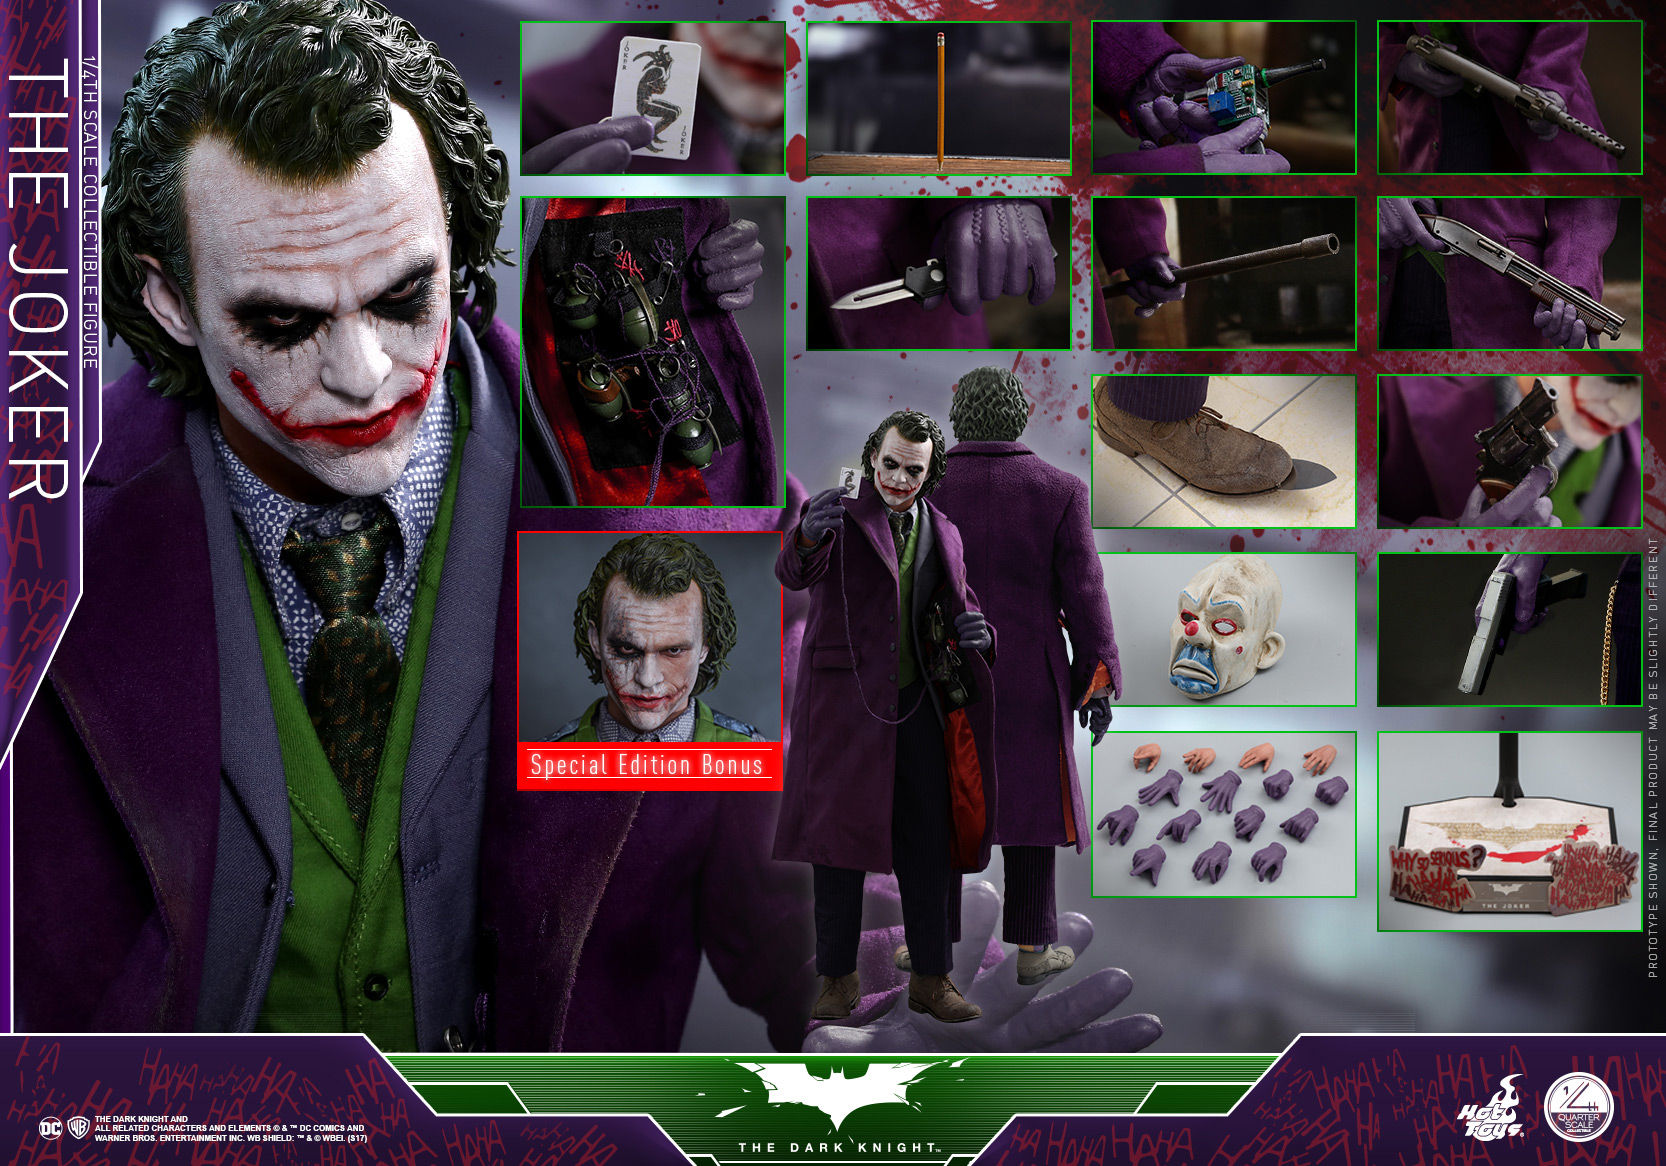 Hot-Toys---The-Dark-Knight---The-Joker-Collectible-Figure_PR30(special)